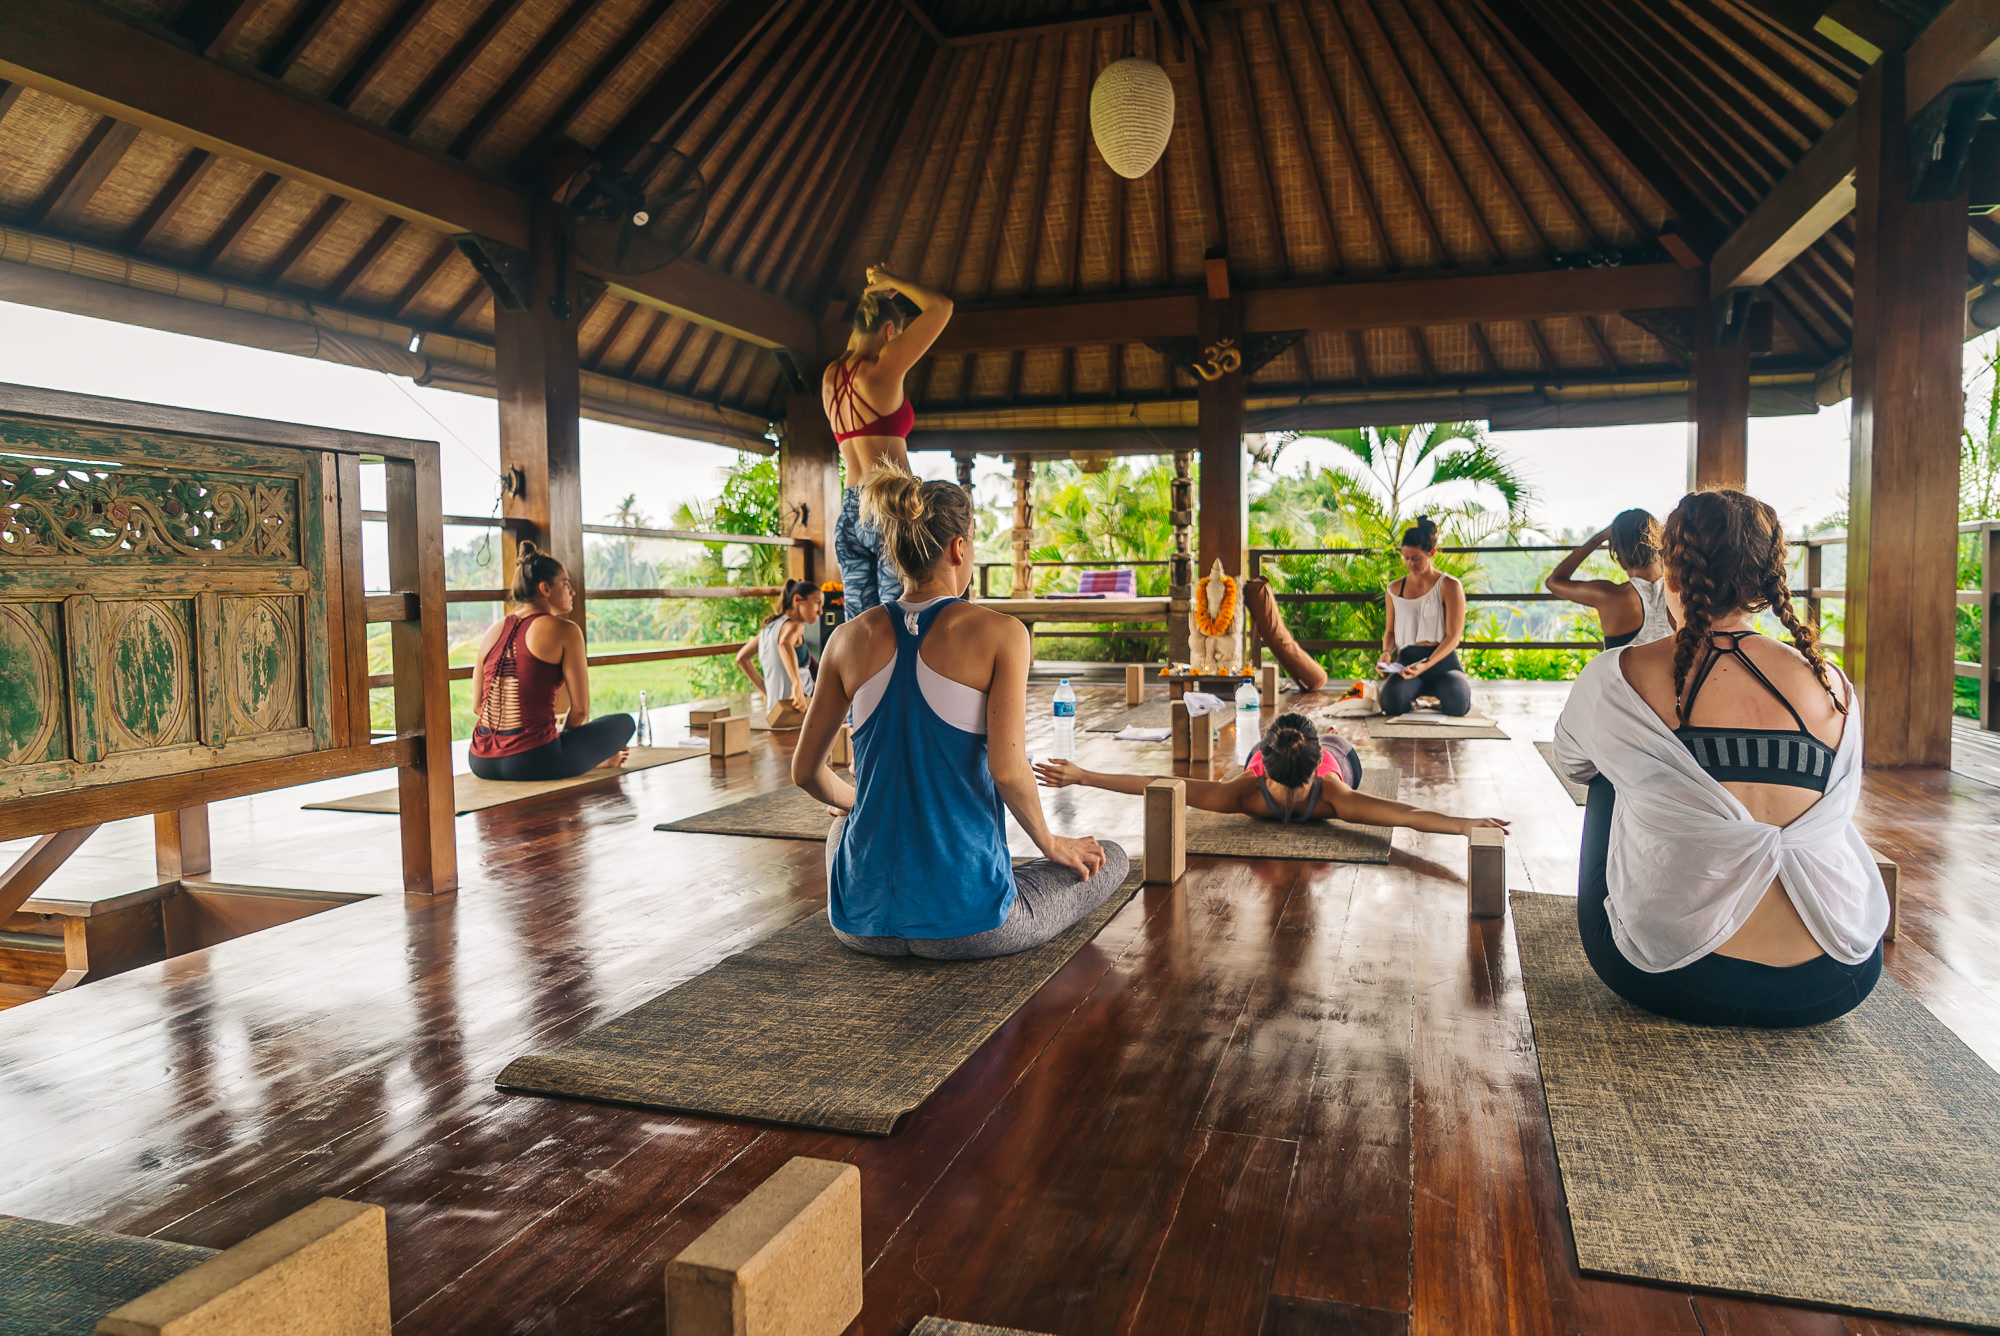 Starting the day in Bali with some yoga